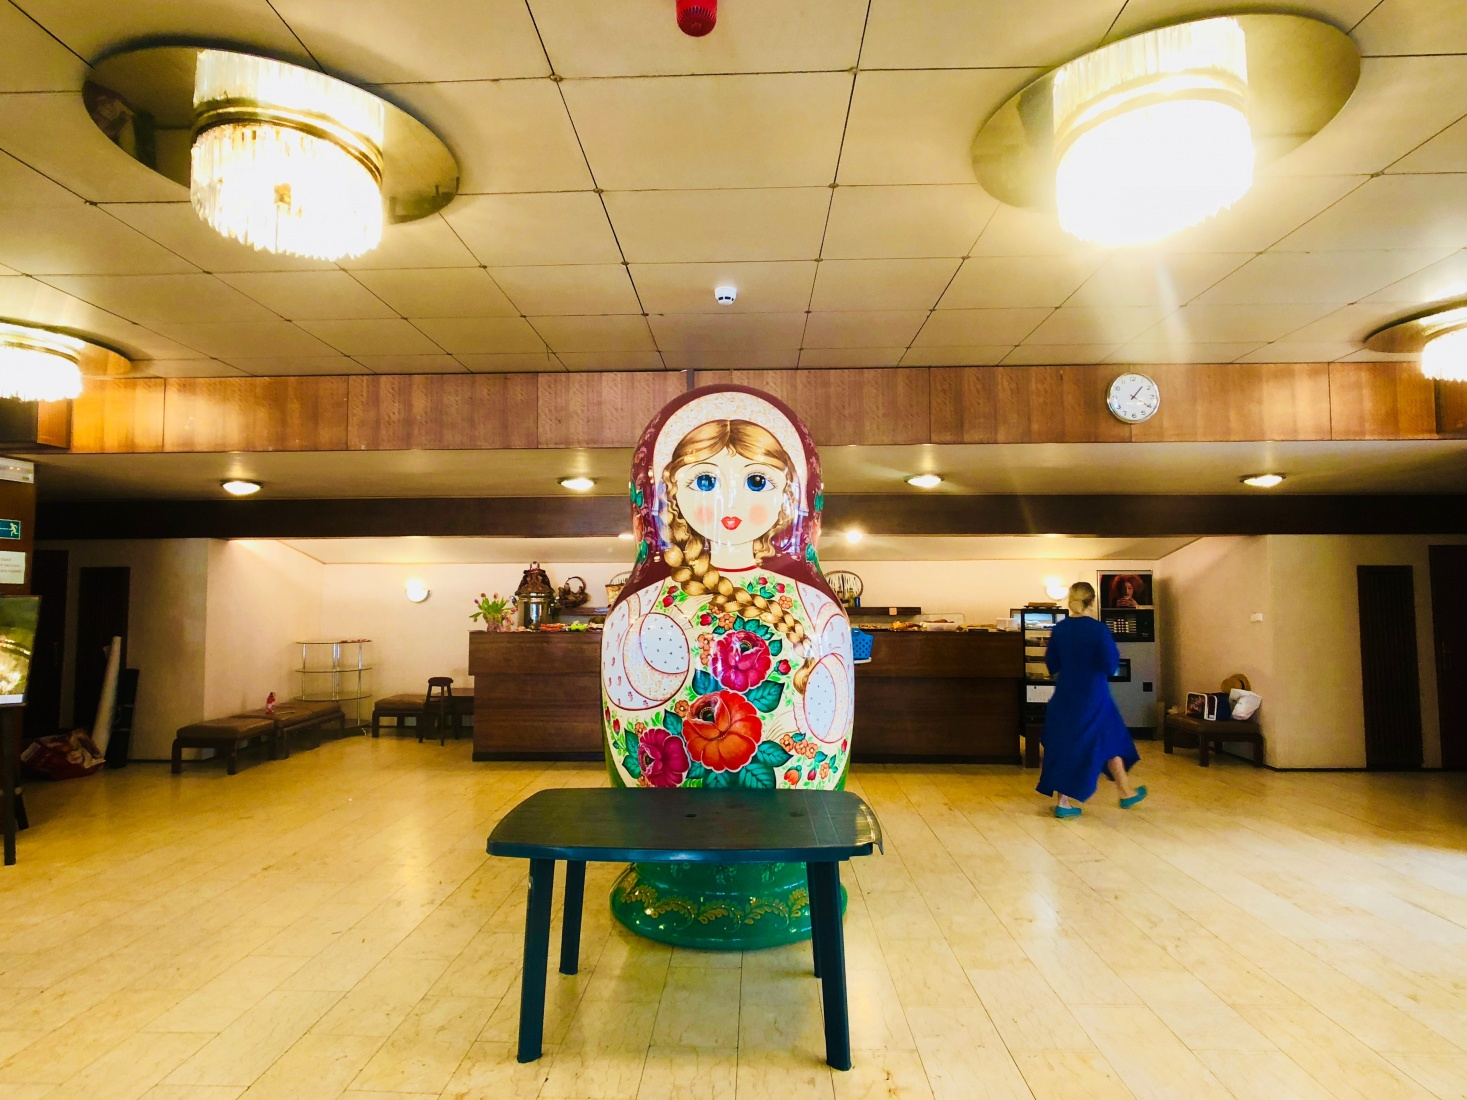 Lobby of Russian Rossotrudnichestvo, the Russian Center for Science and Culture, in Prague, Bubeneč, with a giant matryoshka doll statue.